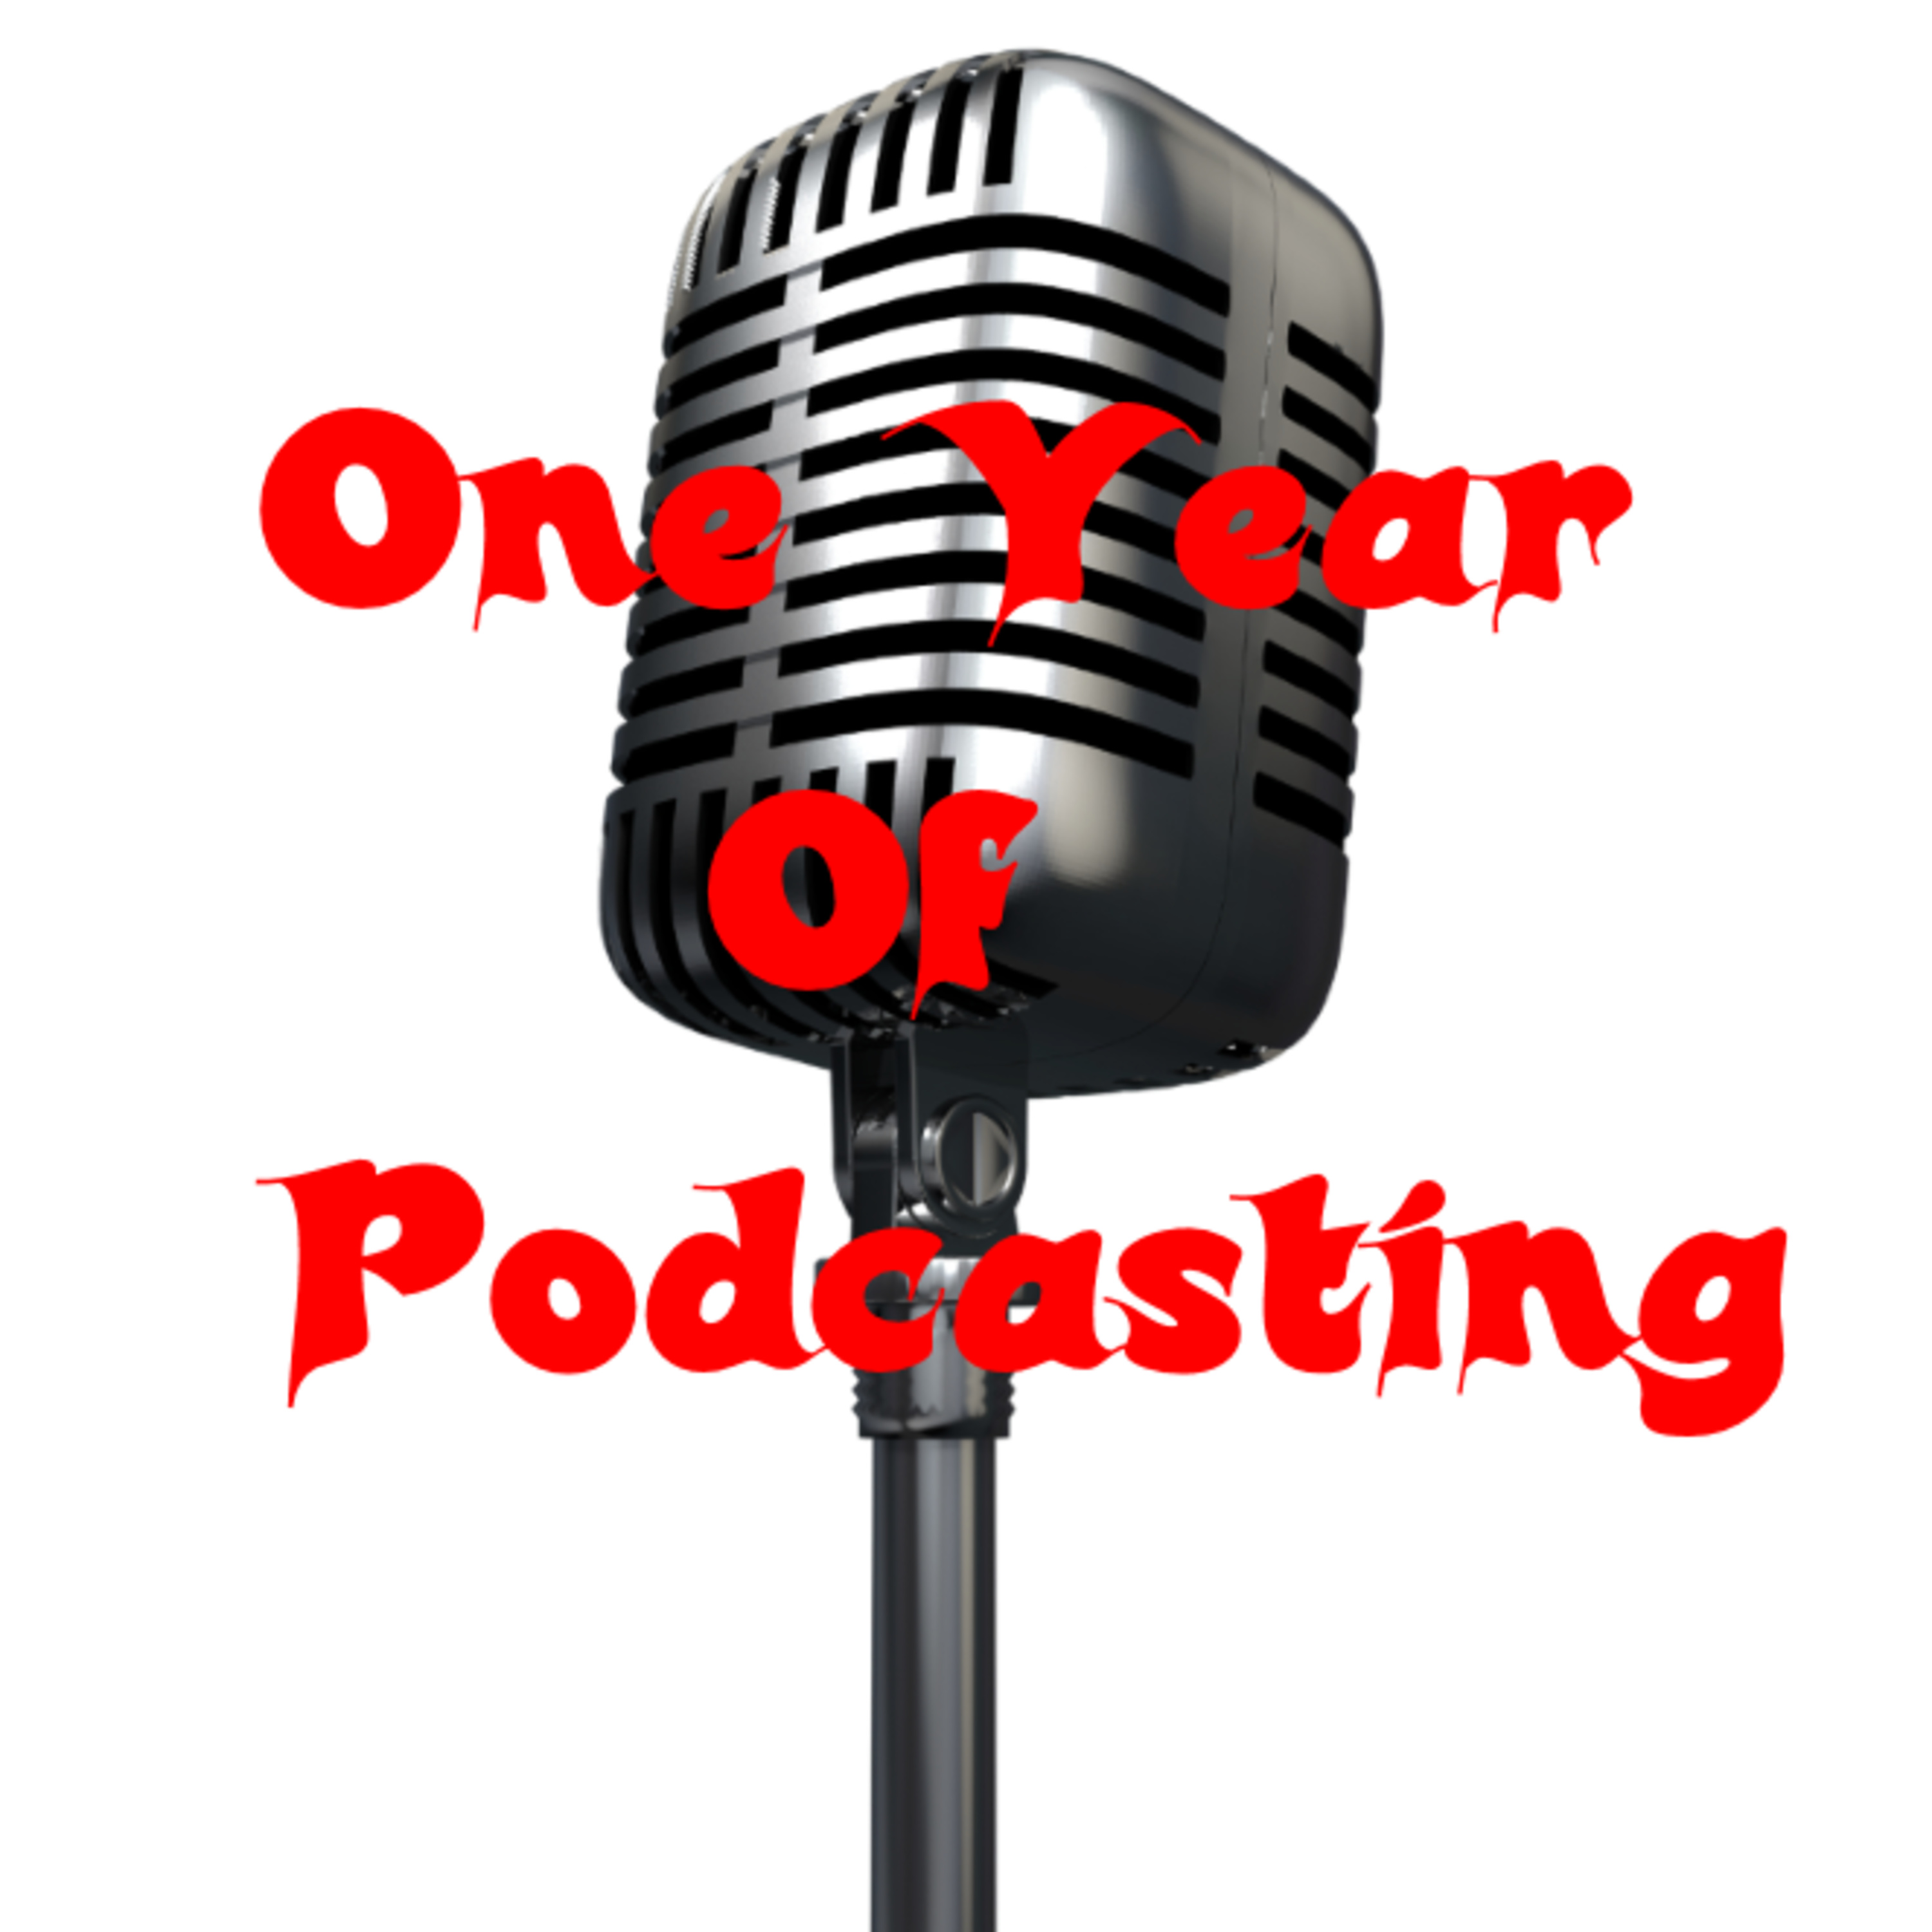 Episode 127 - Thursday Thoughts - One Year Of Podcasting!